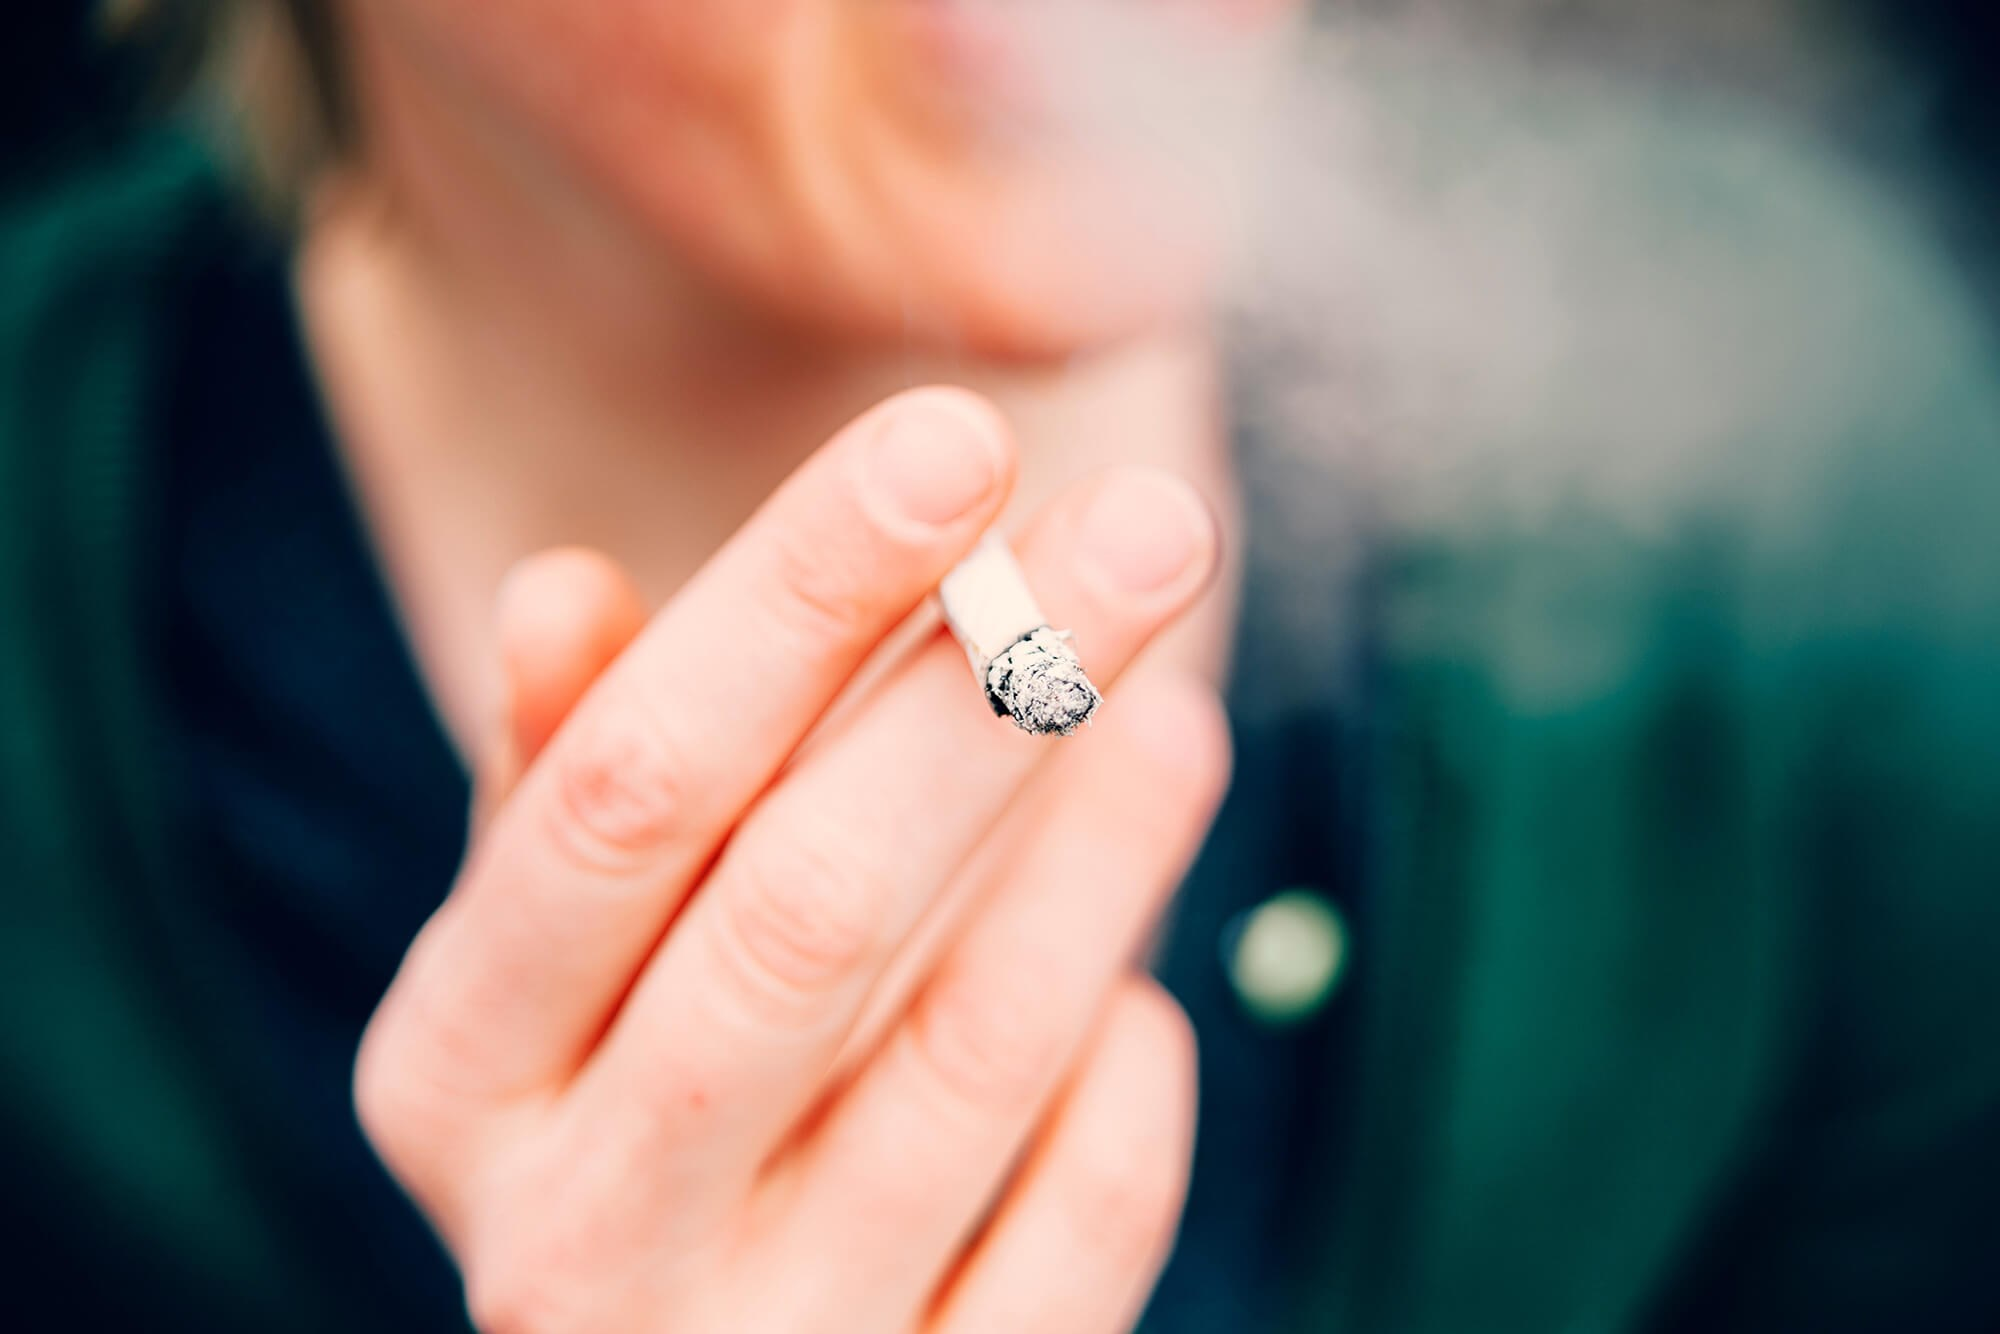 Smoking Ups Risk of Myeloproliferative Neoplasms Overall and by Subtype